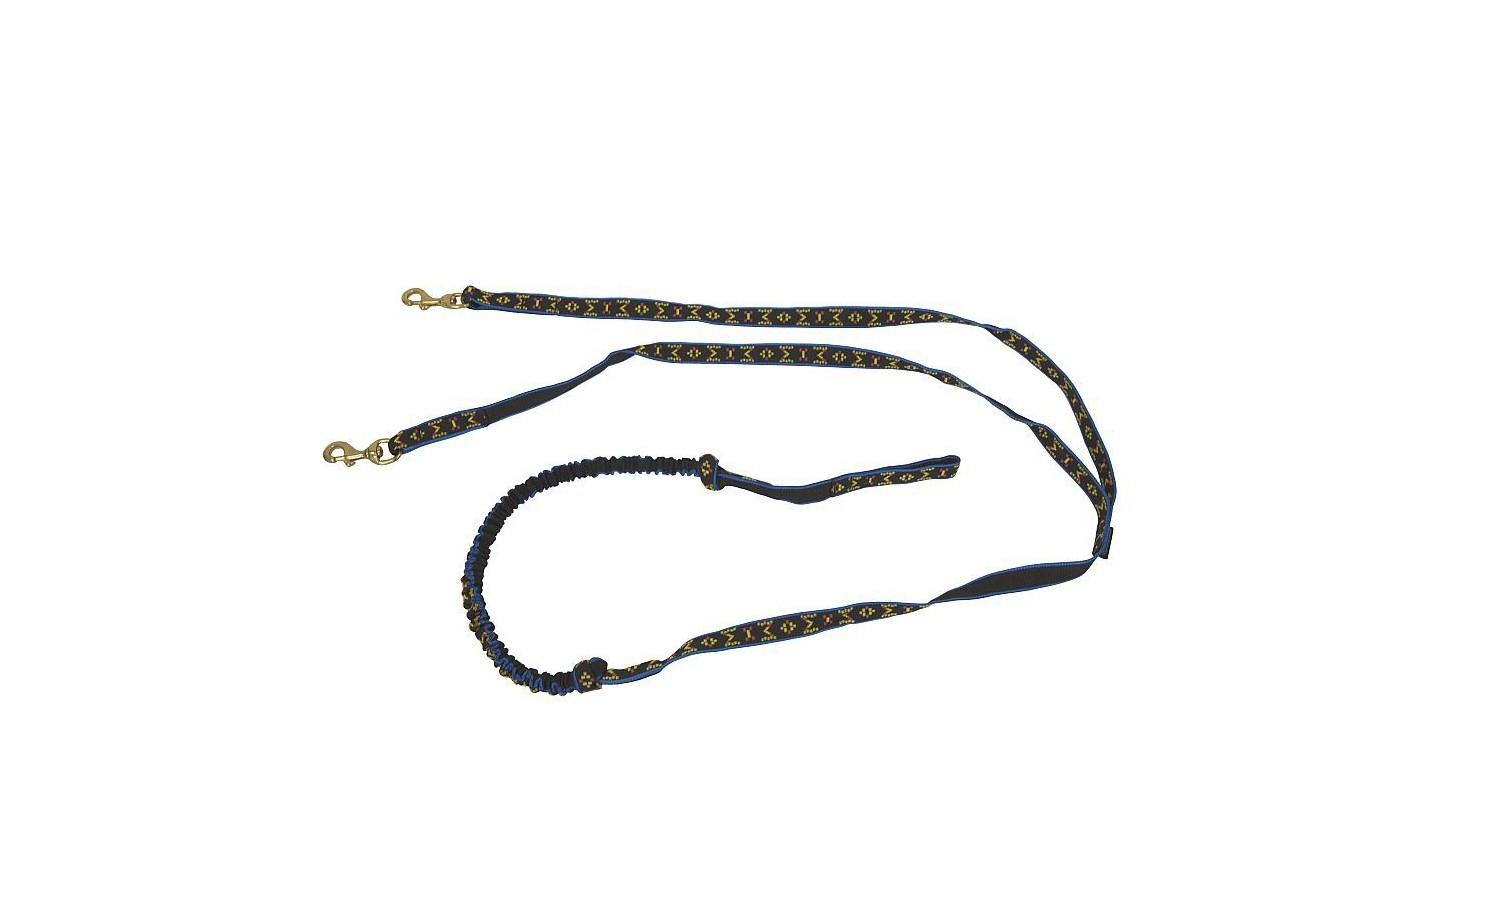 Flexible dog-lead ManMat for 2 dogs